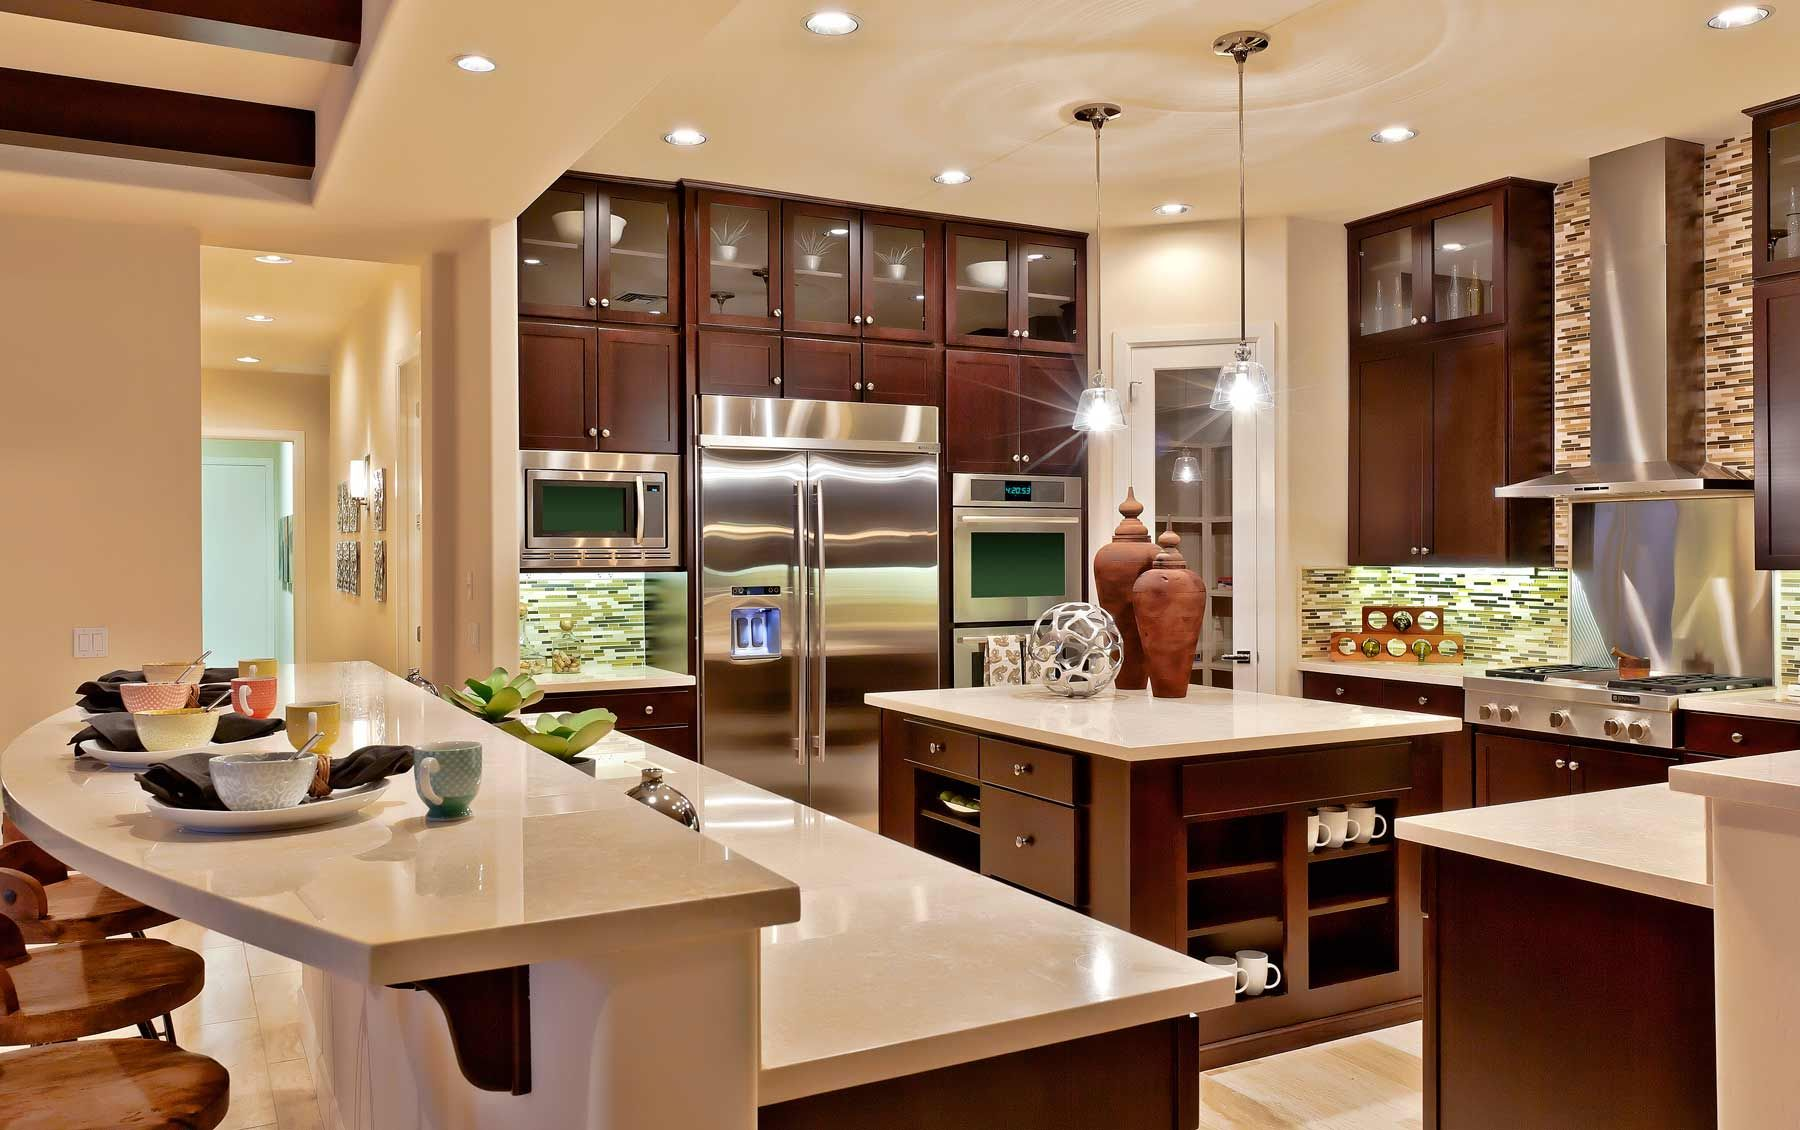 Model Homes Images Interior Interior Model Homes Toll Brothers Model Home Interior